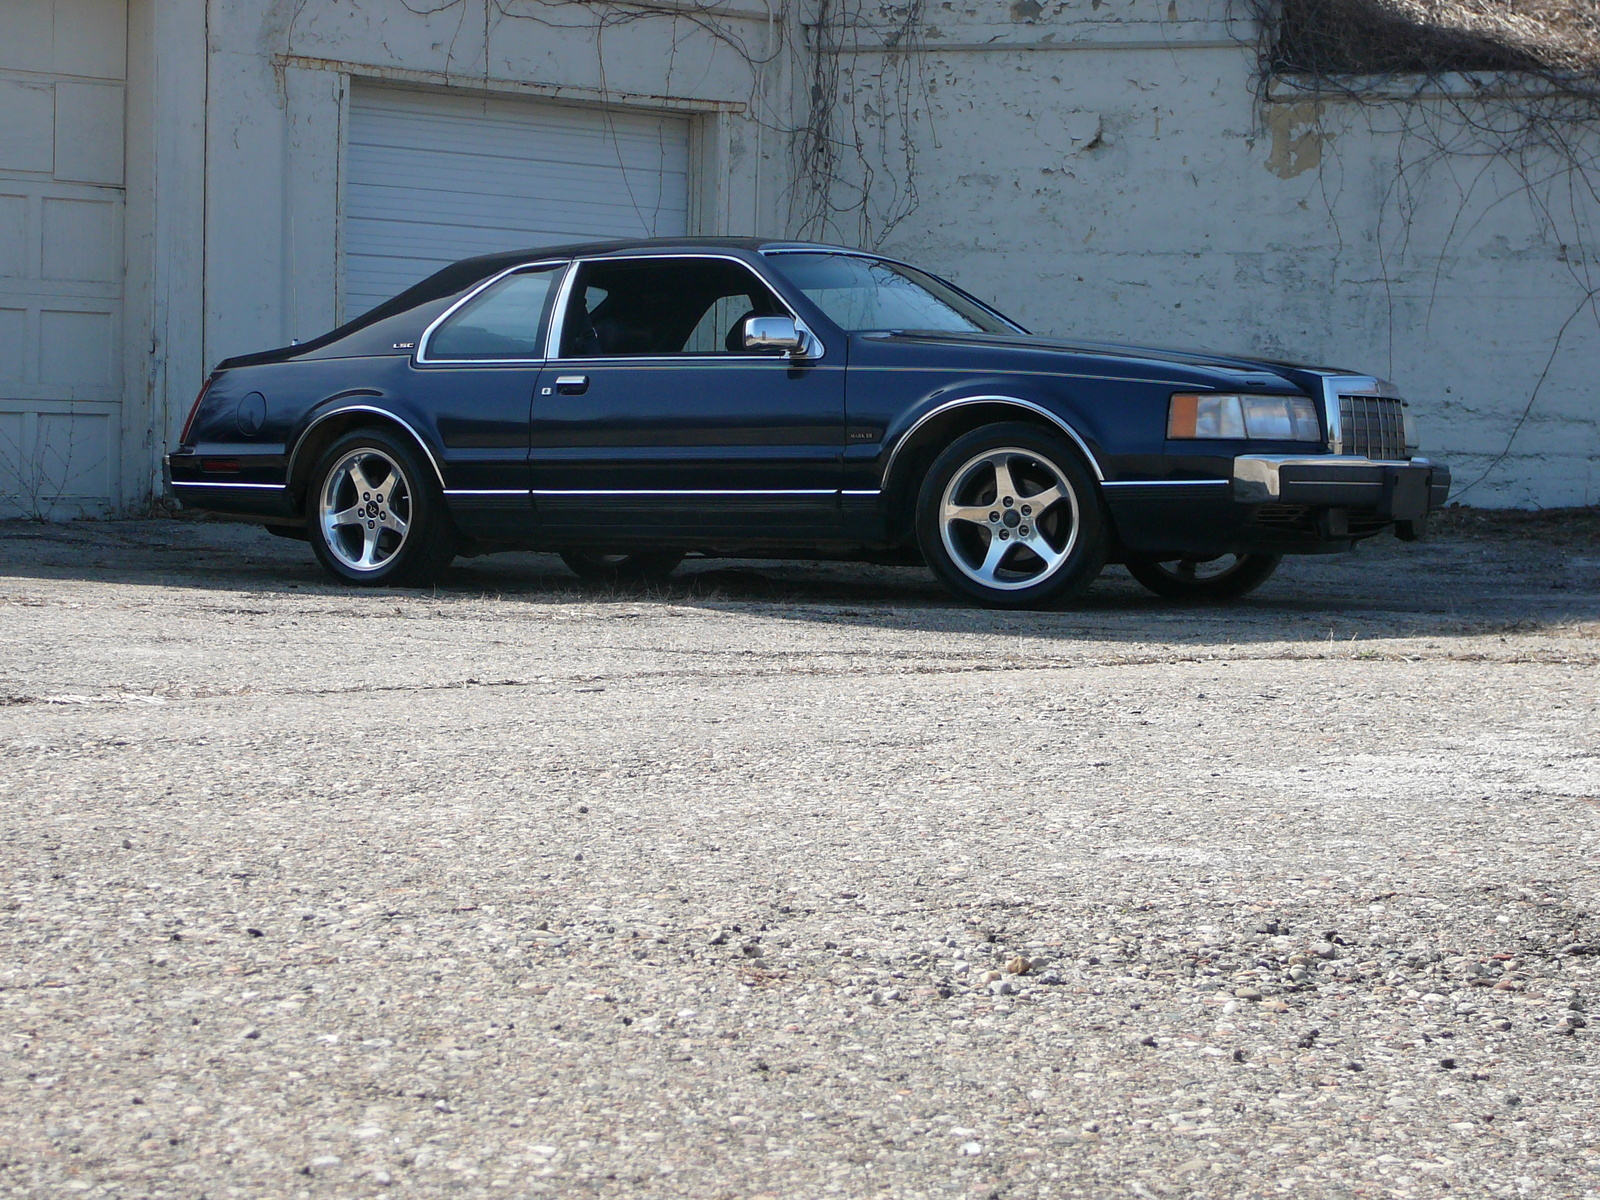 Lincoln Mark VII - 1600 x 1200, 01 из 12